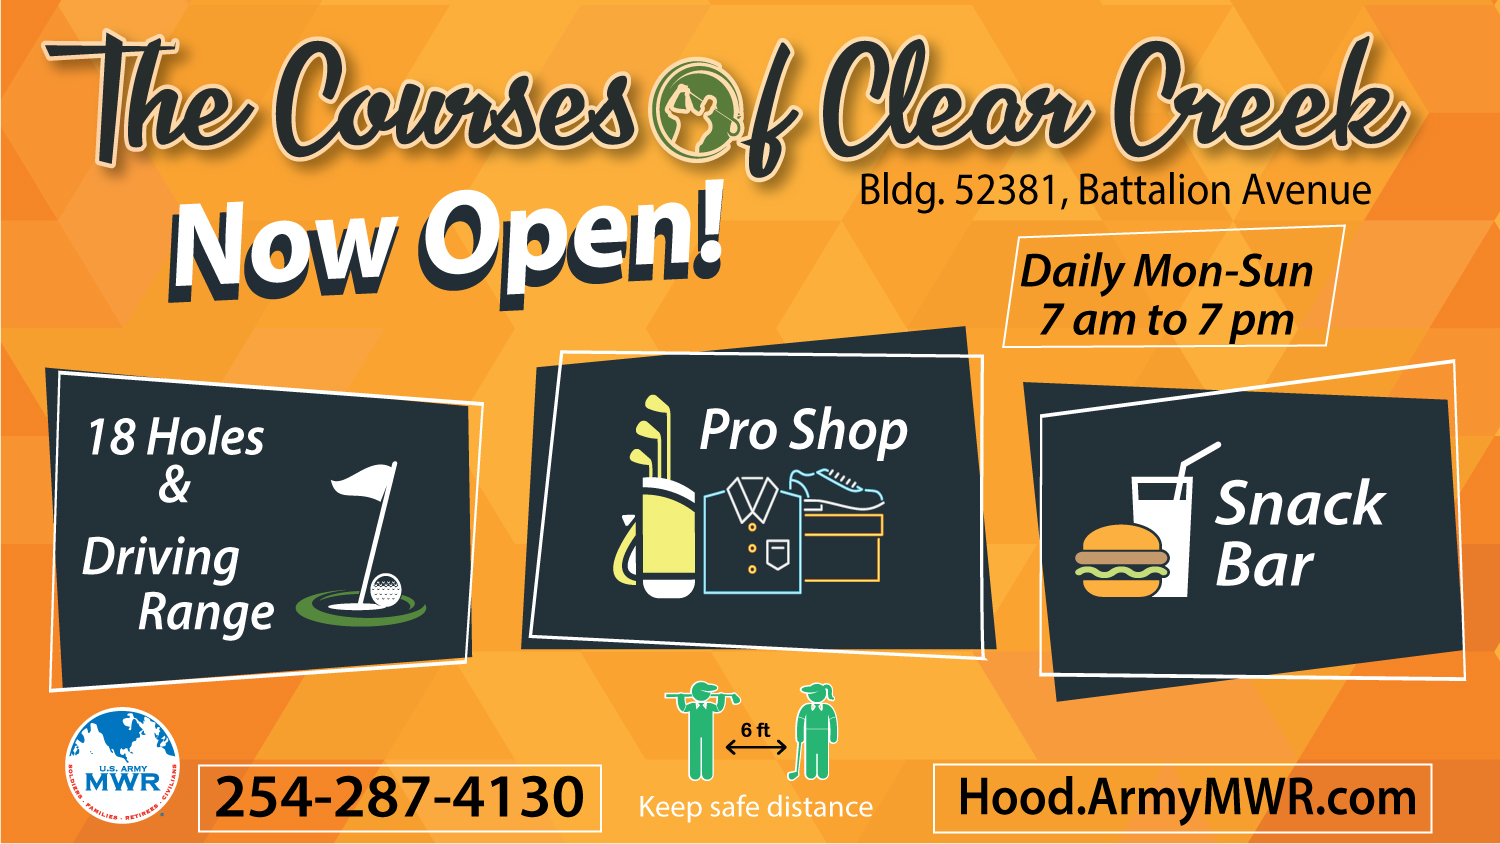 The Courses of Clear Creek is Open